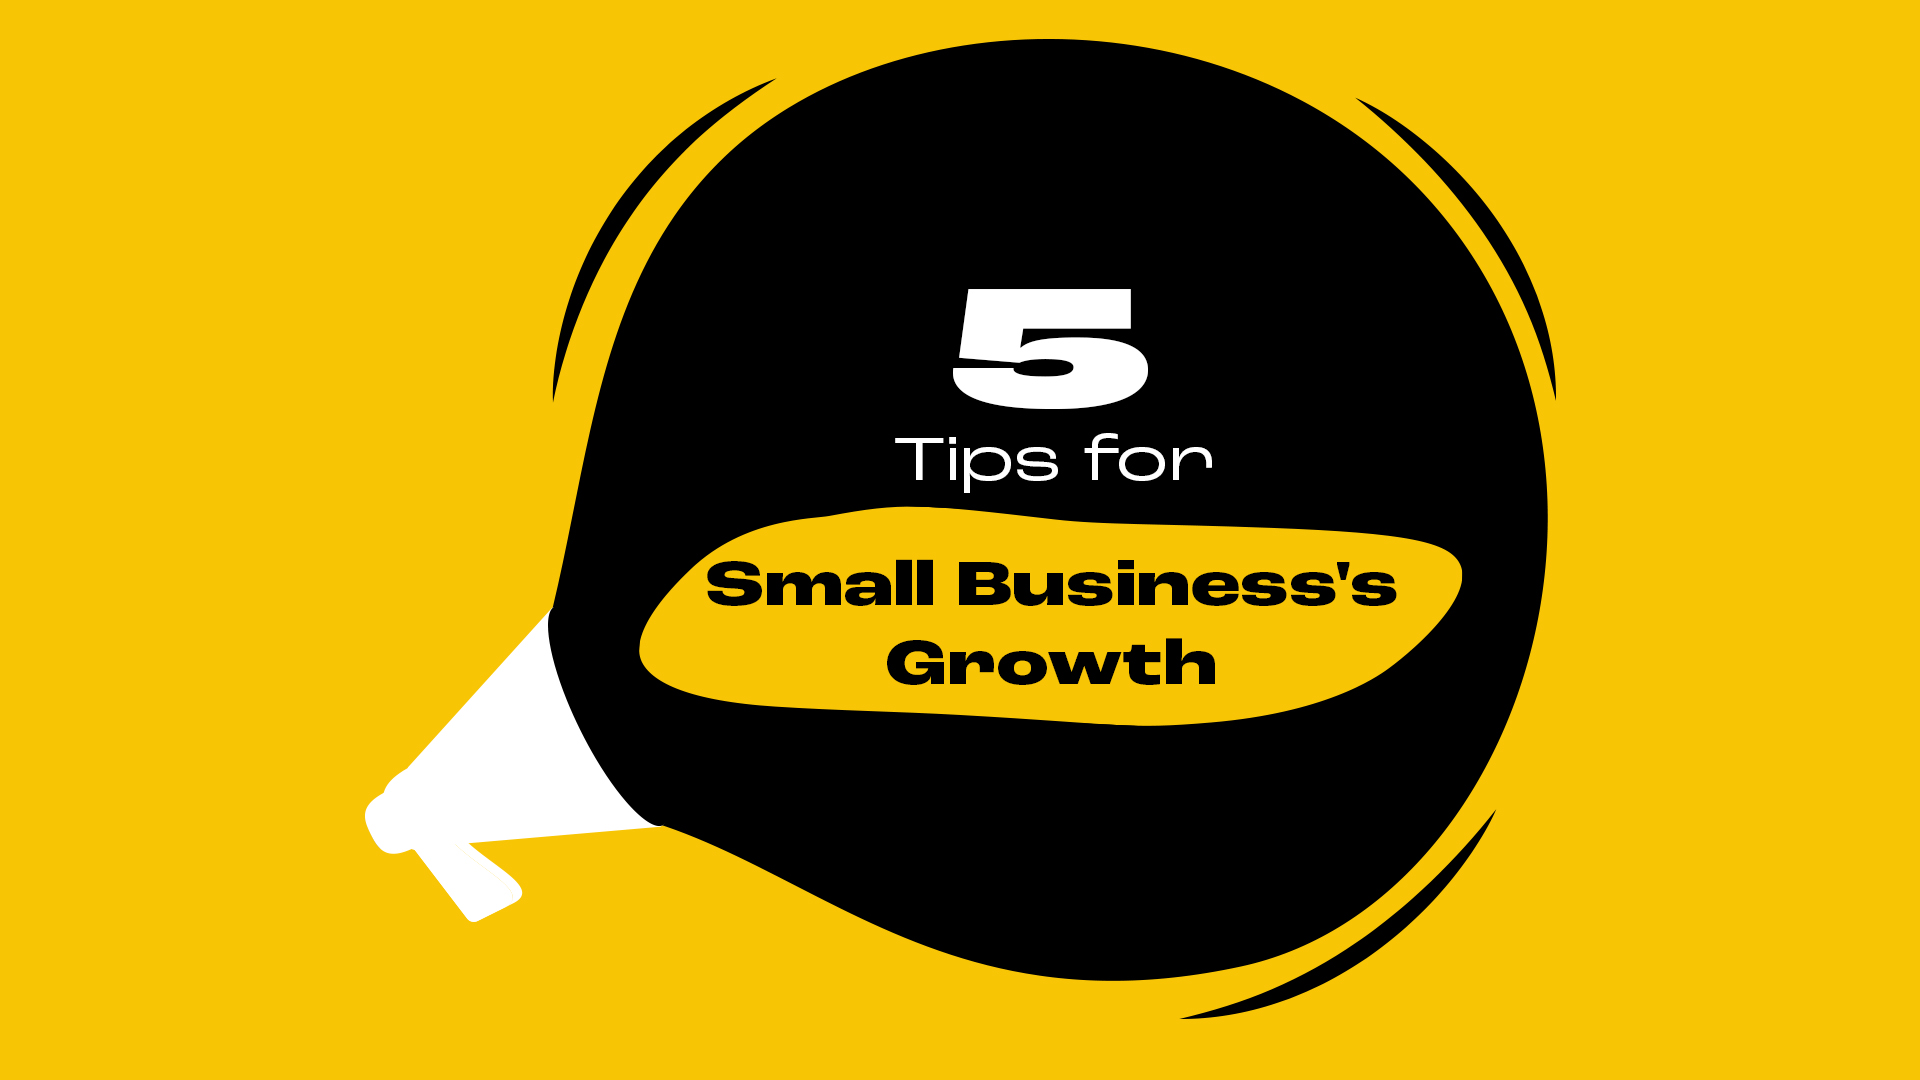 5 Tips for Small Business's Growth